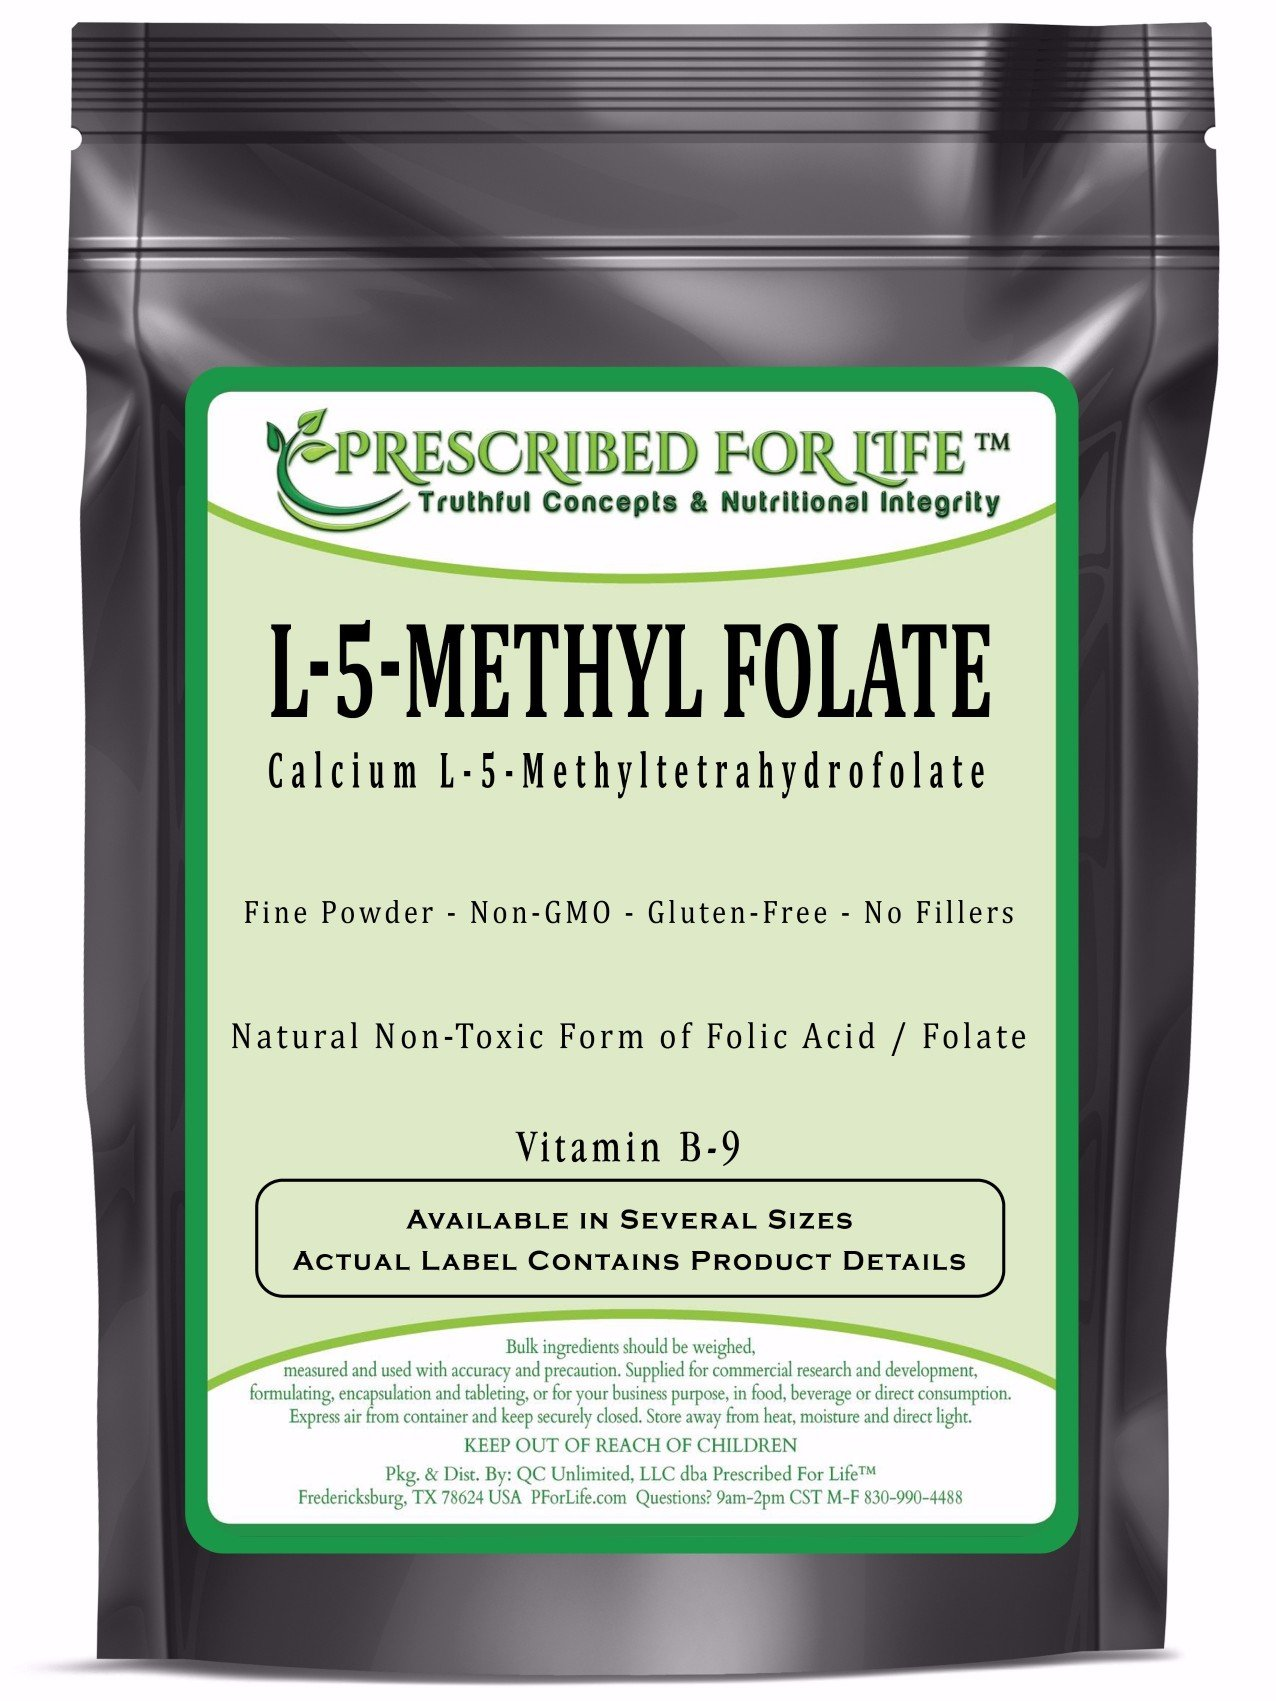 MethylFolate (L) - Natural 5-MethylTetraHydroFolate Vitamin B-9 Pure Folic Acid Powder, 1 oz